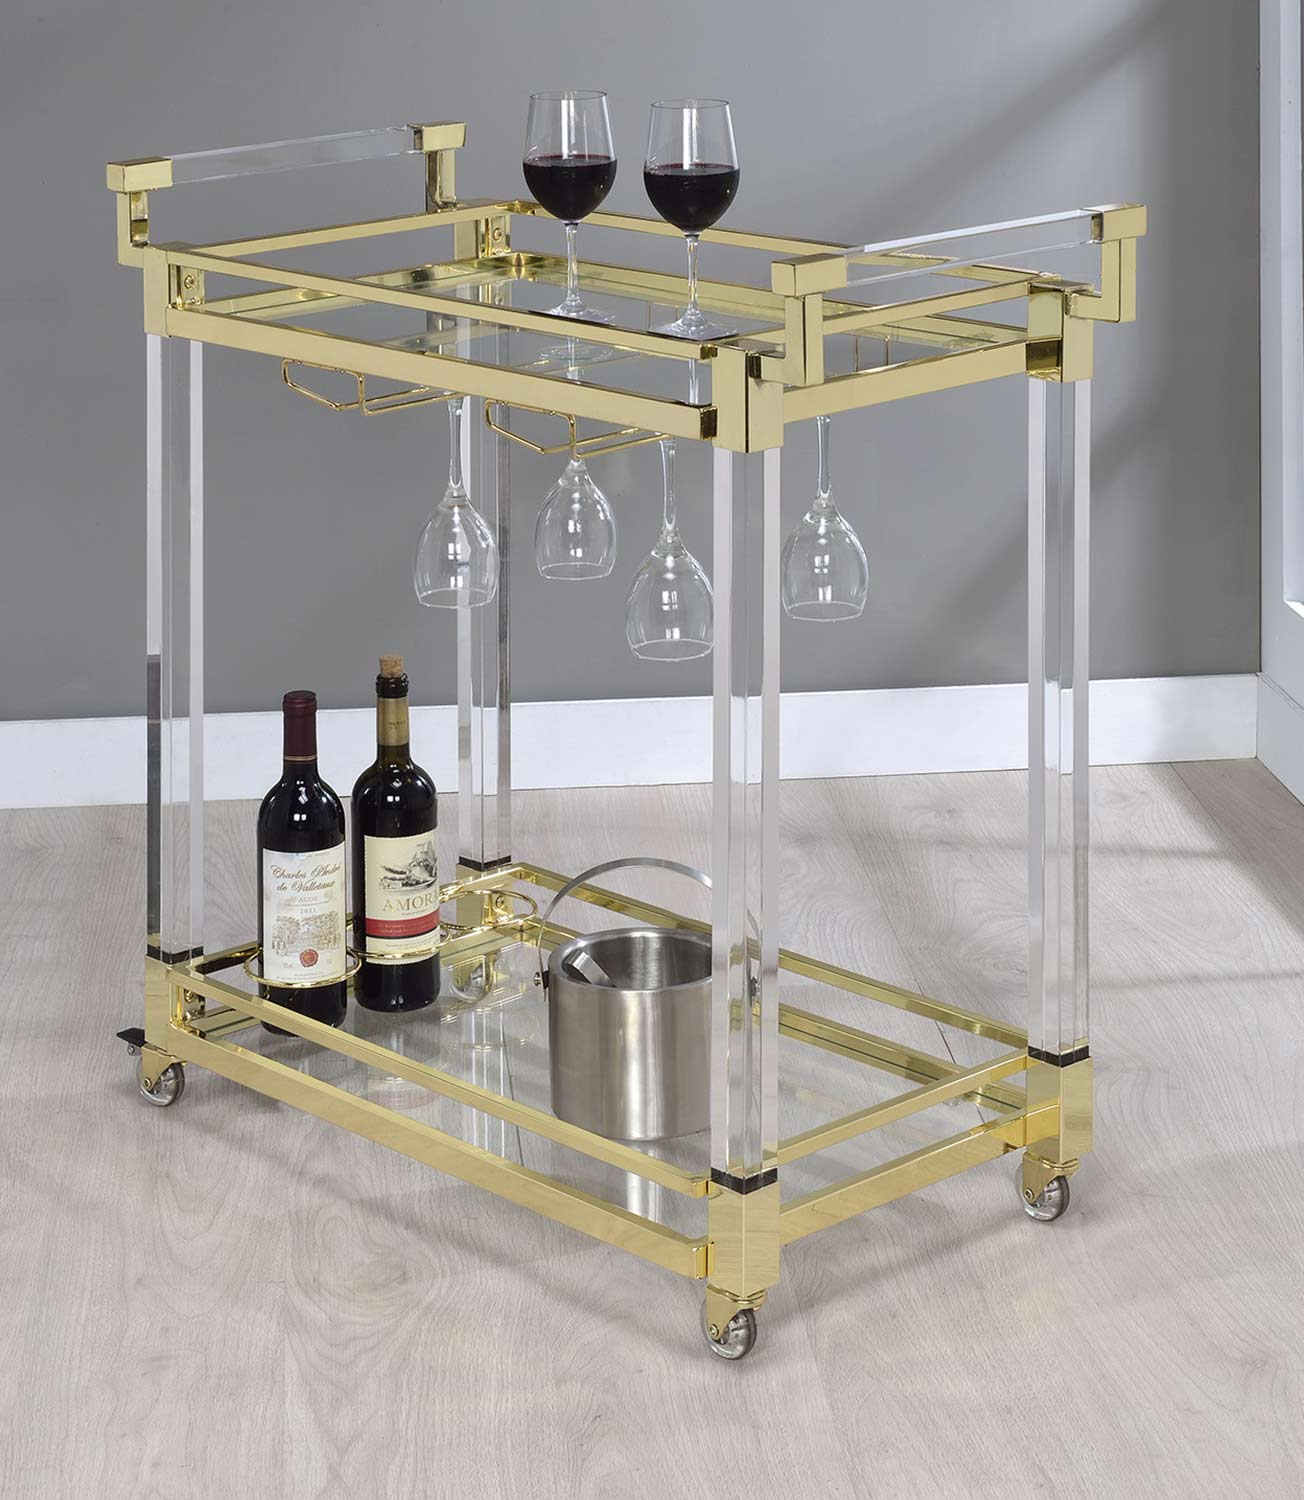 Coaster 181000 Serving Cart - Clear Acrylic/Brass